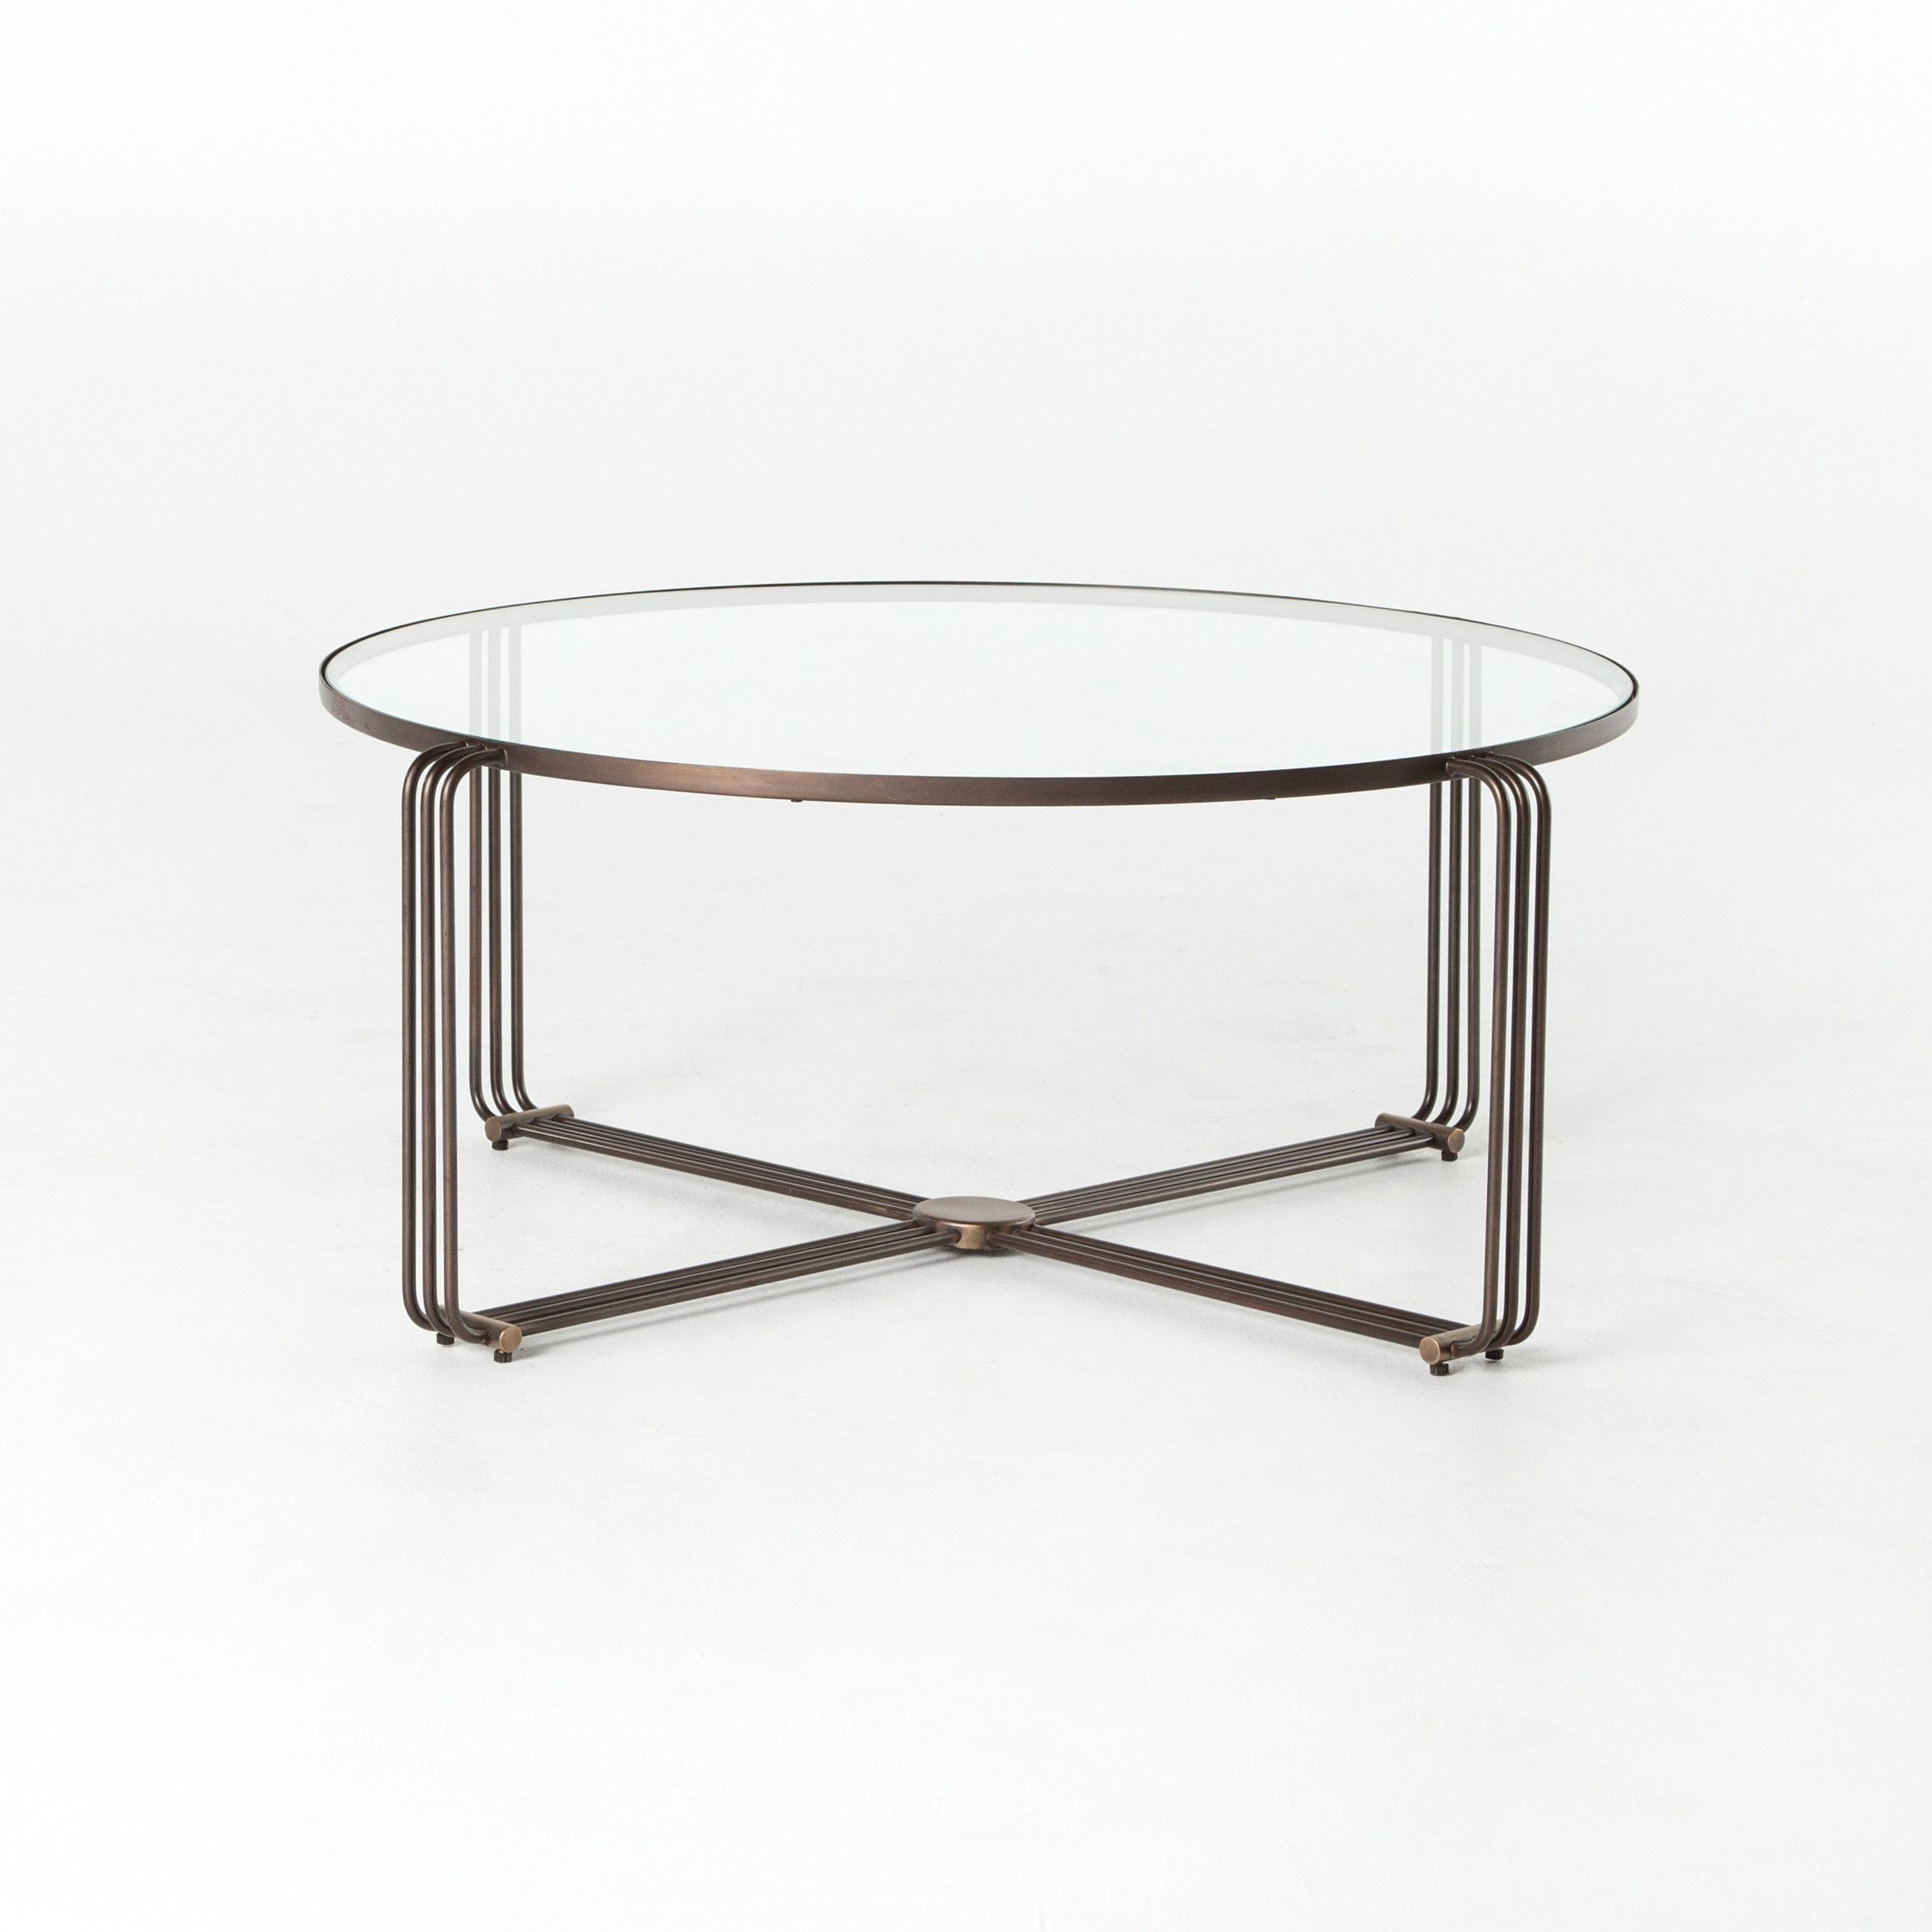 Art Deco Design Adopts A Touch Of Vintage Glamour As Two Toned Brass Meets  Round, Tempered Glass For A Fresh, Subtly Feminine Spin On Slim Coffee Table  ...